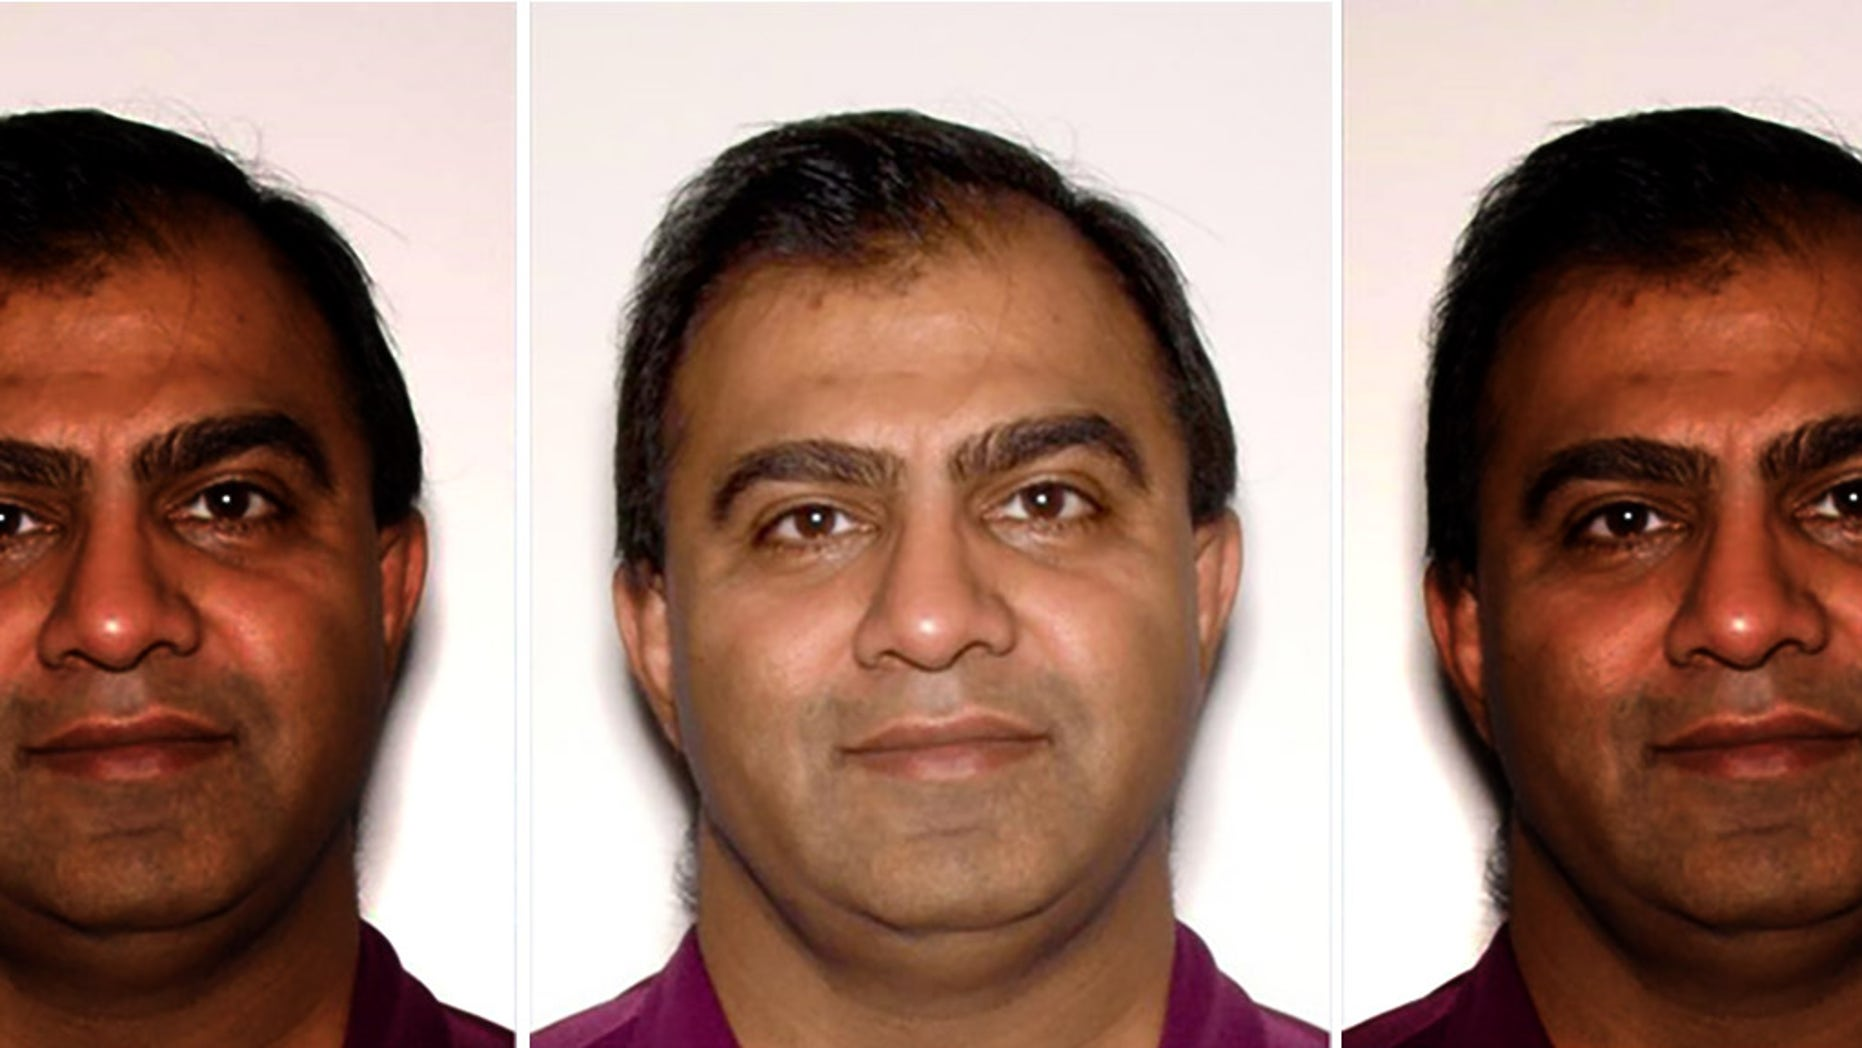 Gwinnett County Police charged 48-year-old Ketan Shah with one count of felony theft by conversion. Shah is a prominent Atlanta-area businessman arrested for exploiting Super Bowl fans —including his mother. (Gwinnett County Police)